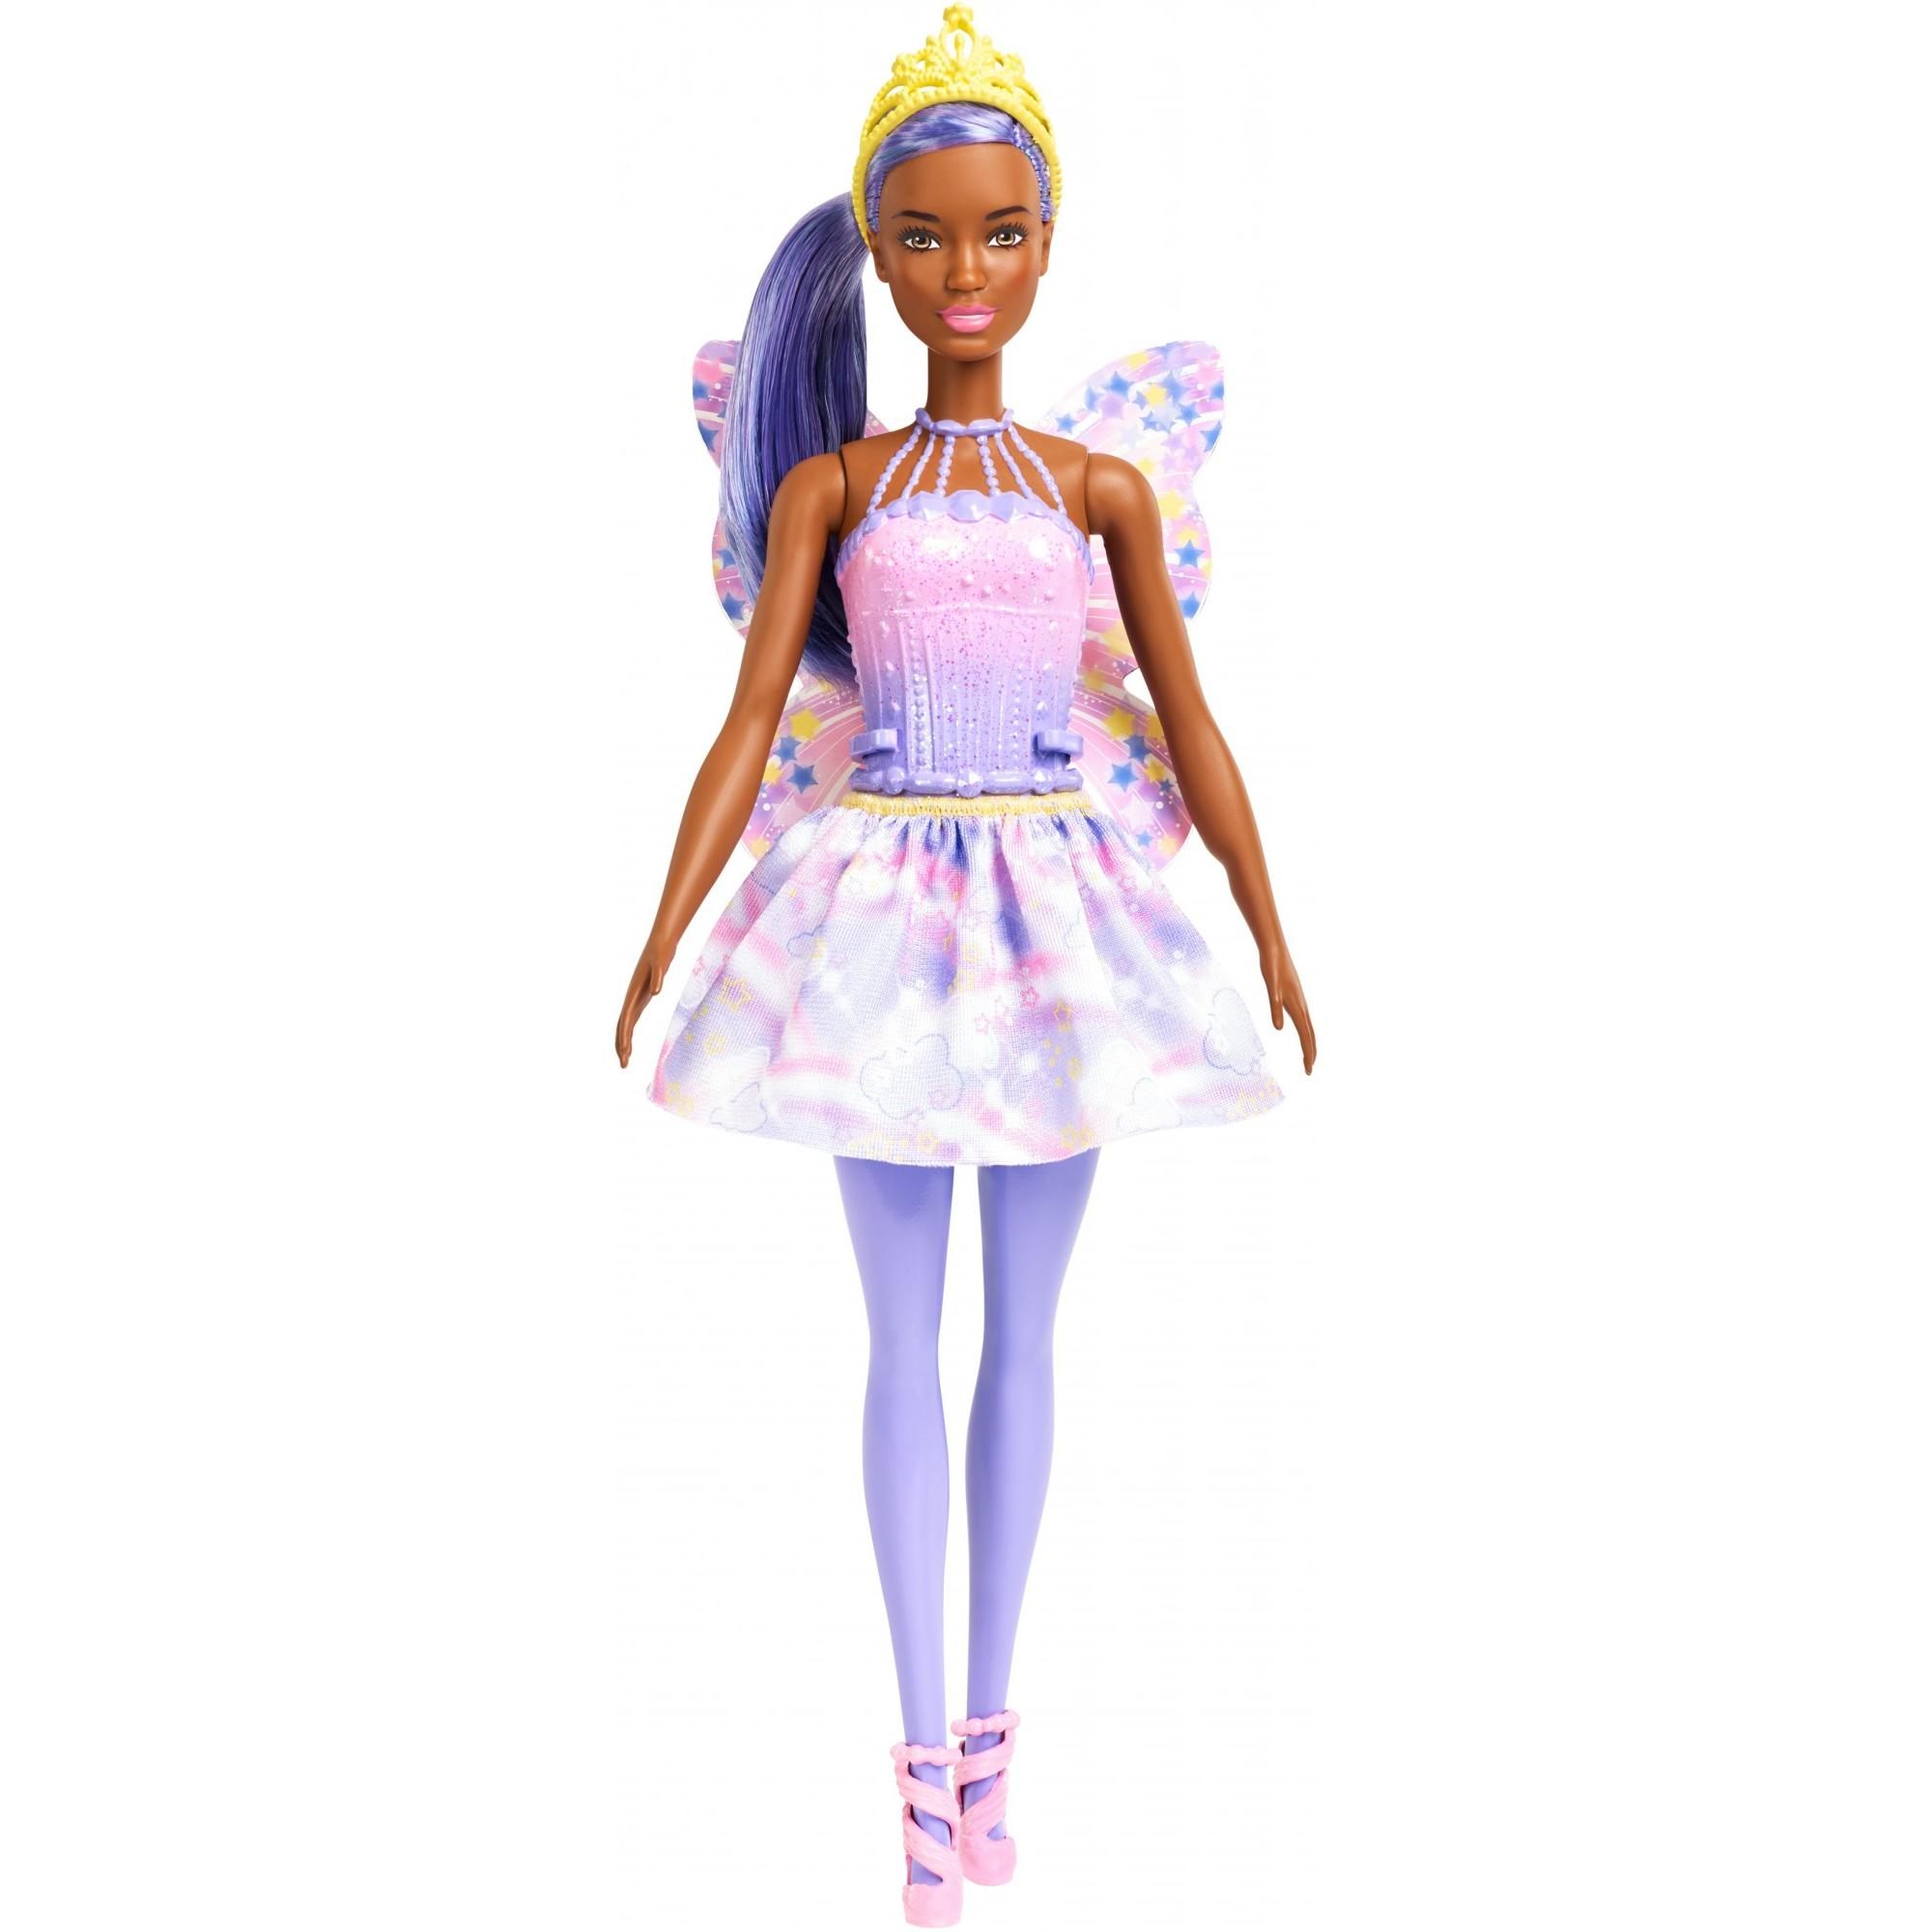 Barbie Dreamtopia Fairy Doll, Purple Hair & Star-Decorated Wings